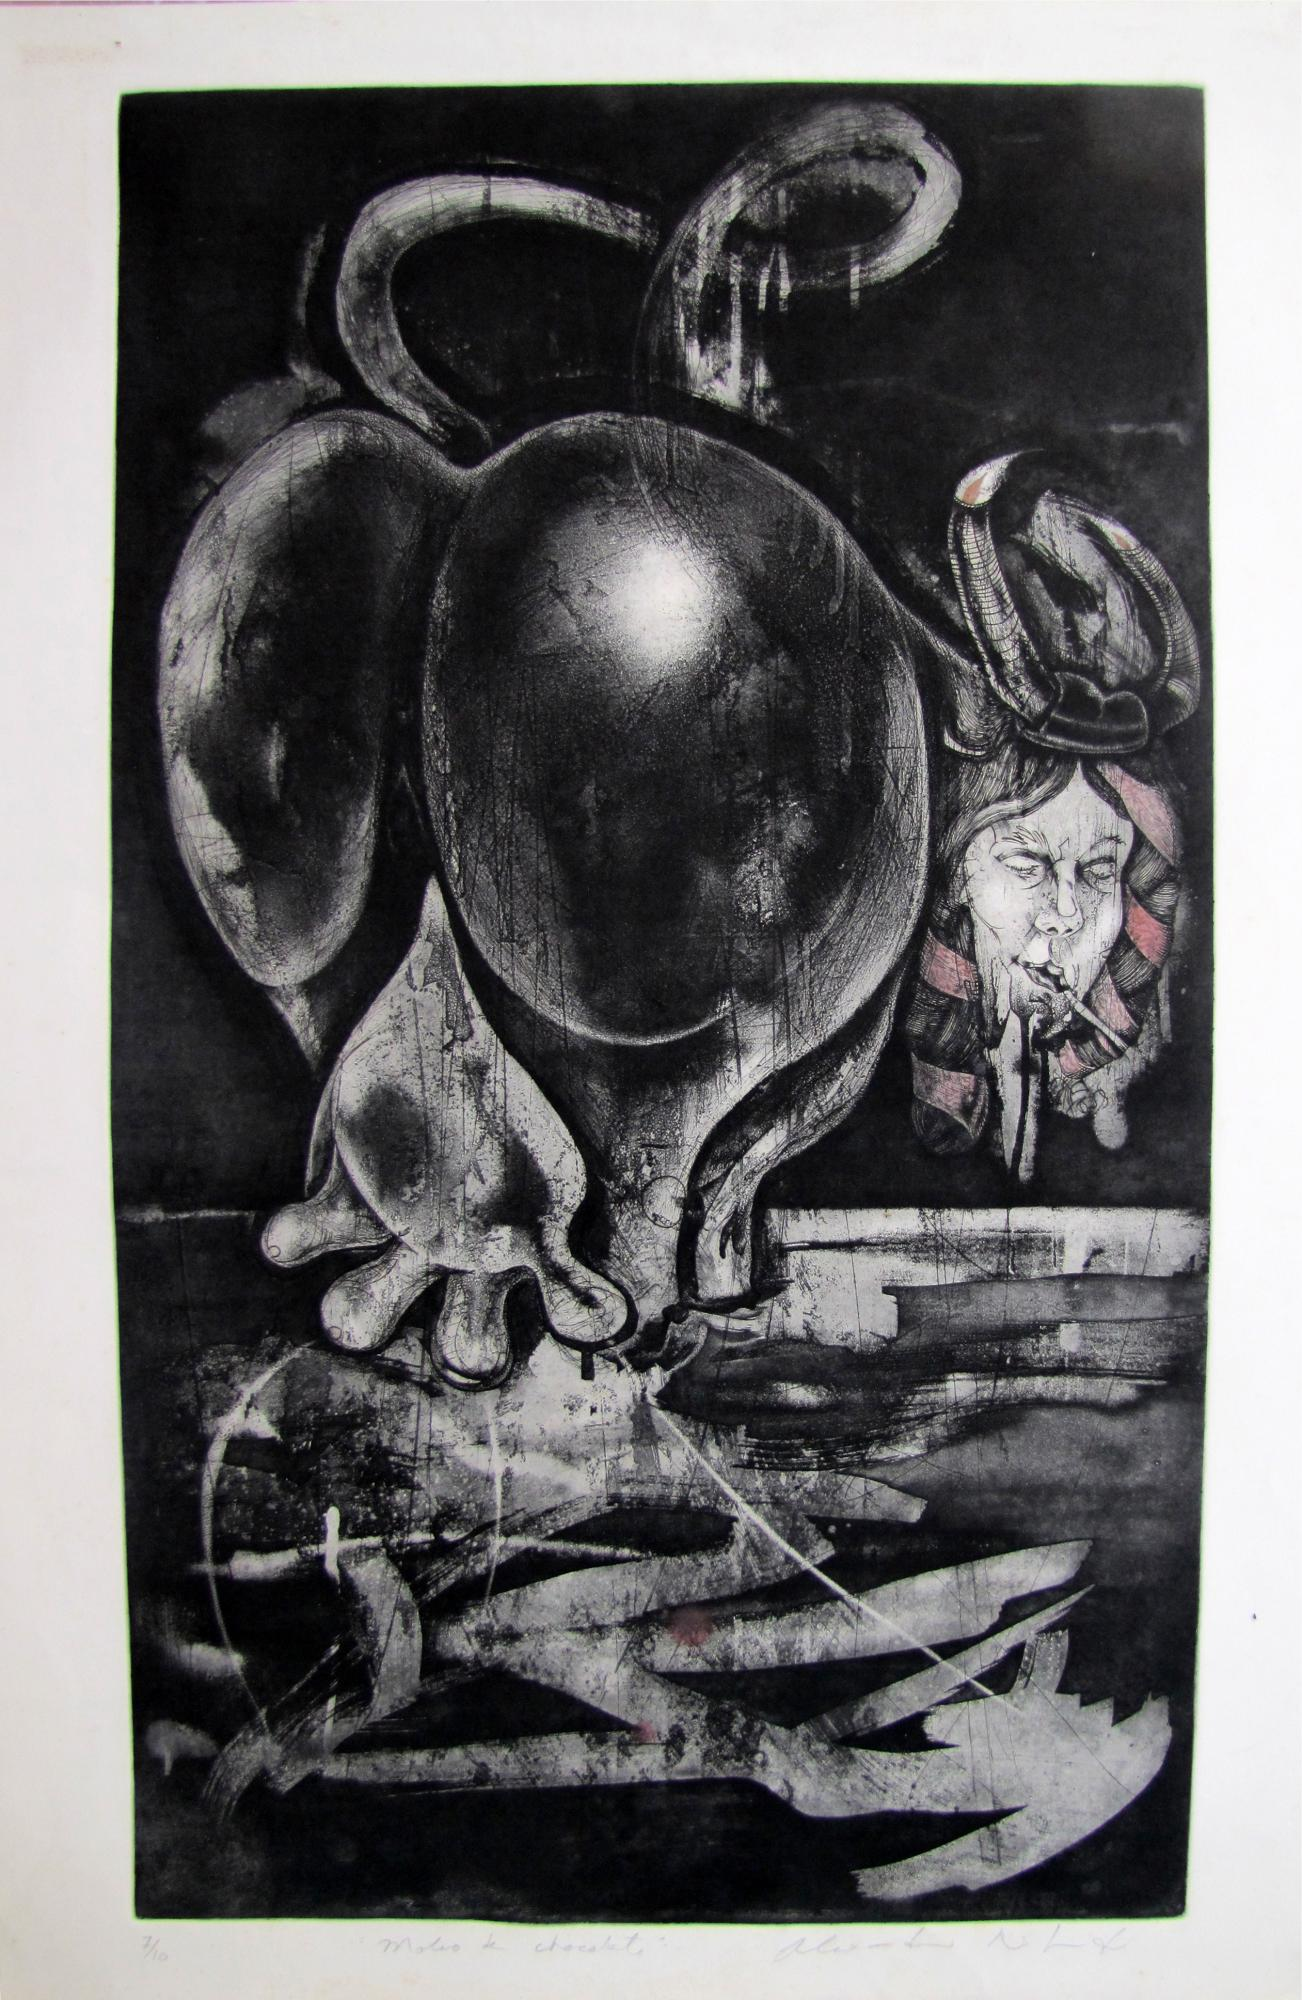 Molino de chocolate. Etching .1997. 19 x 33 inches